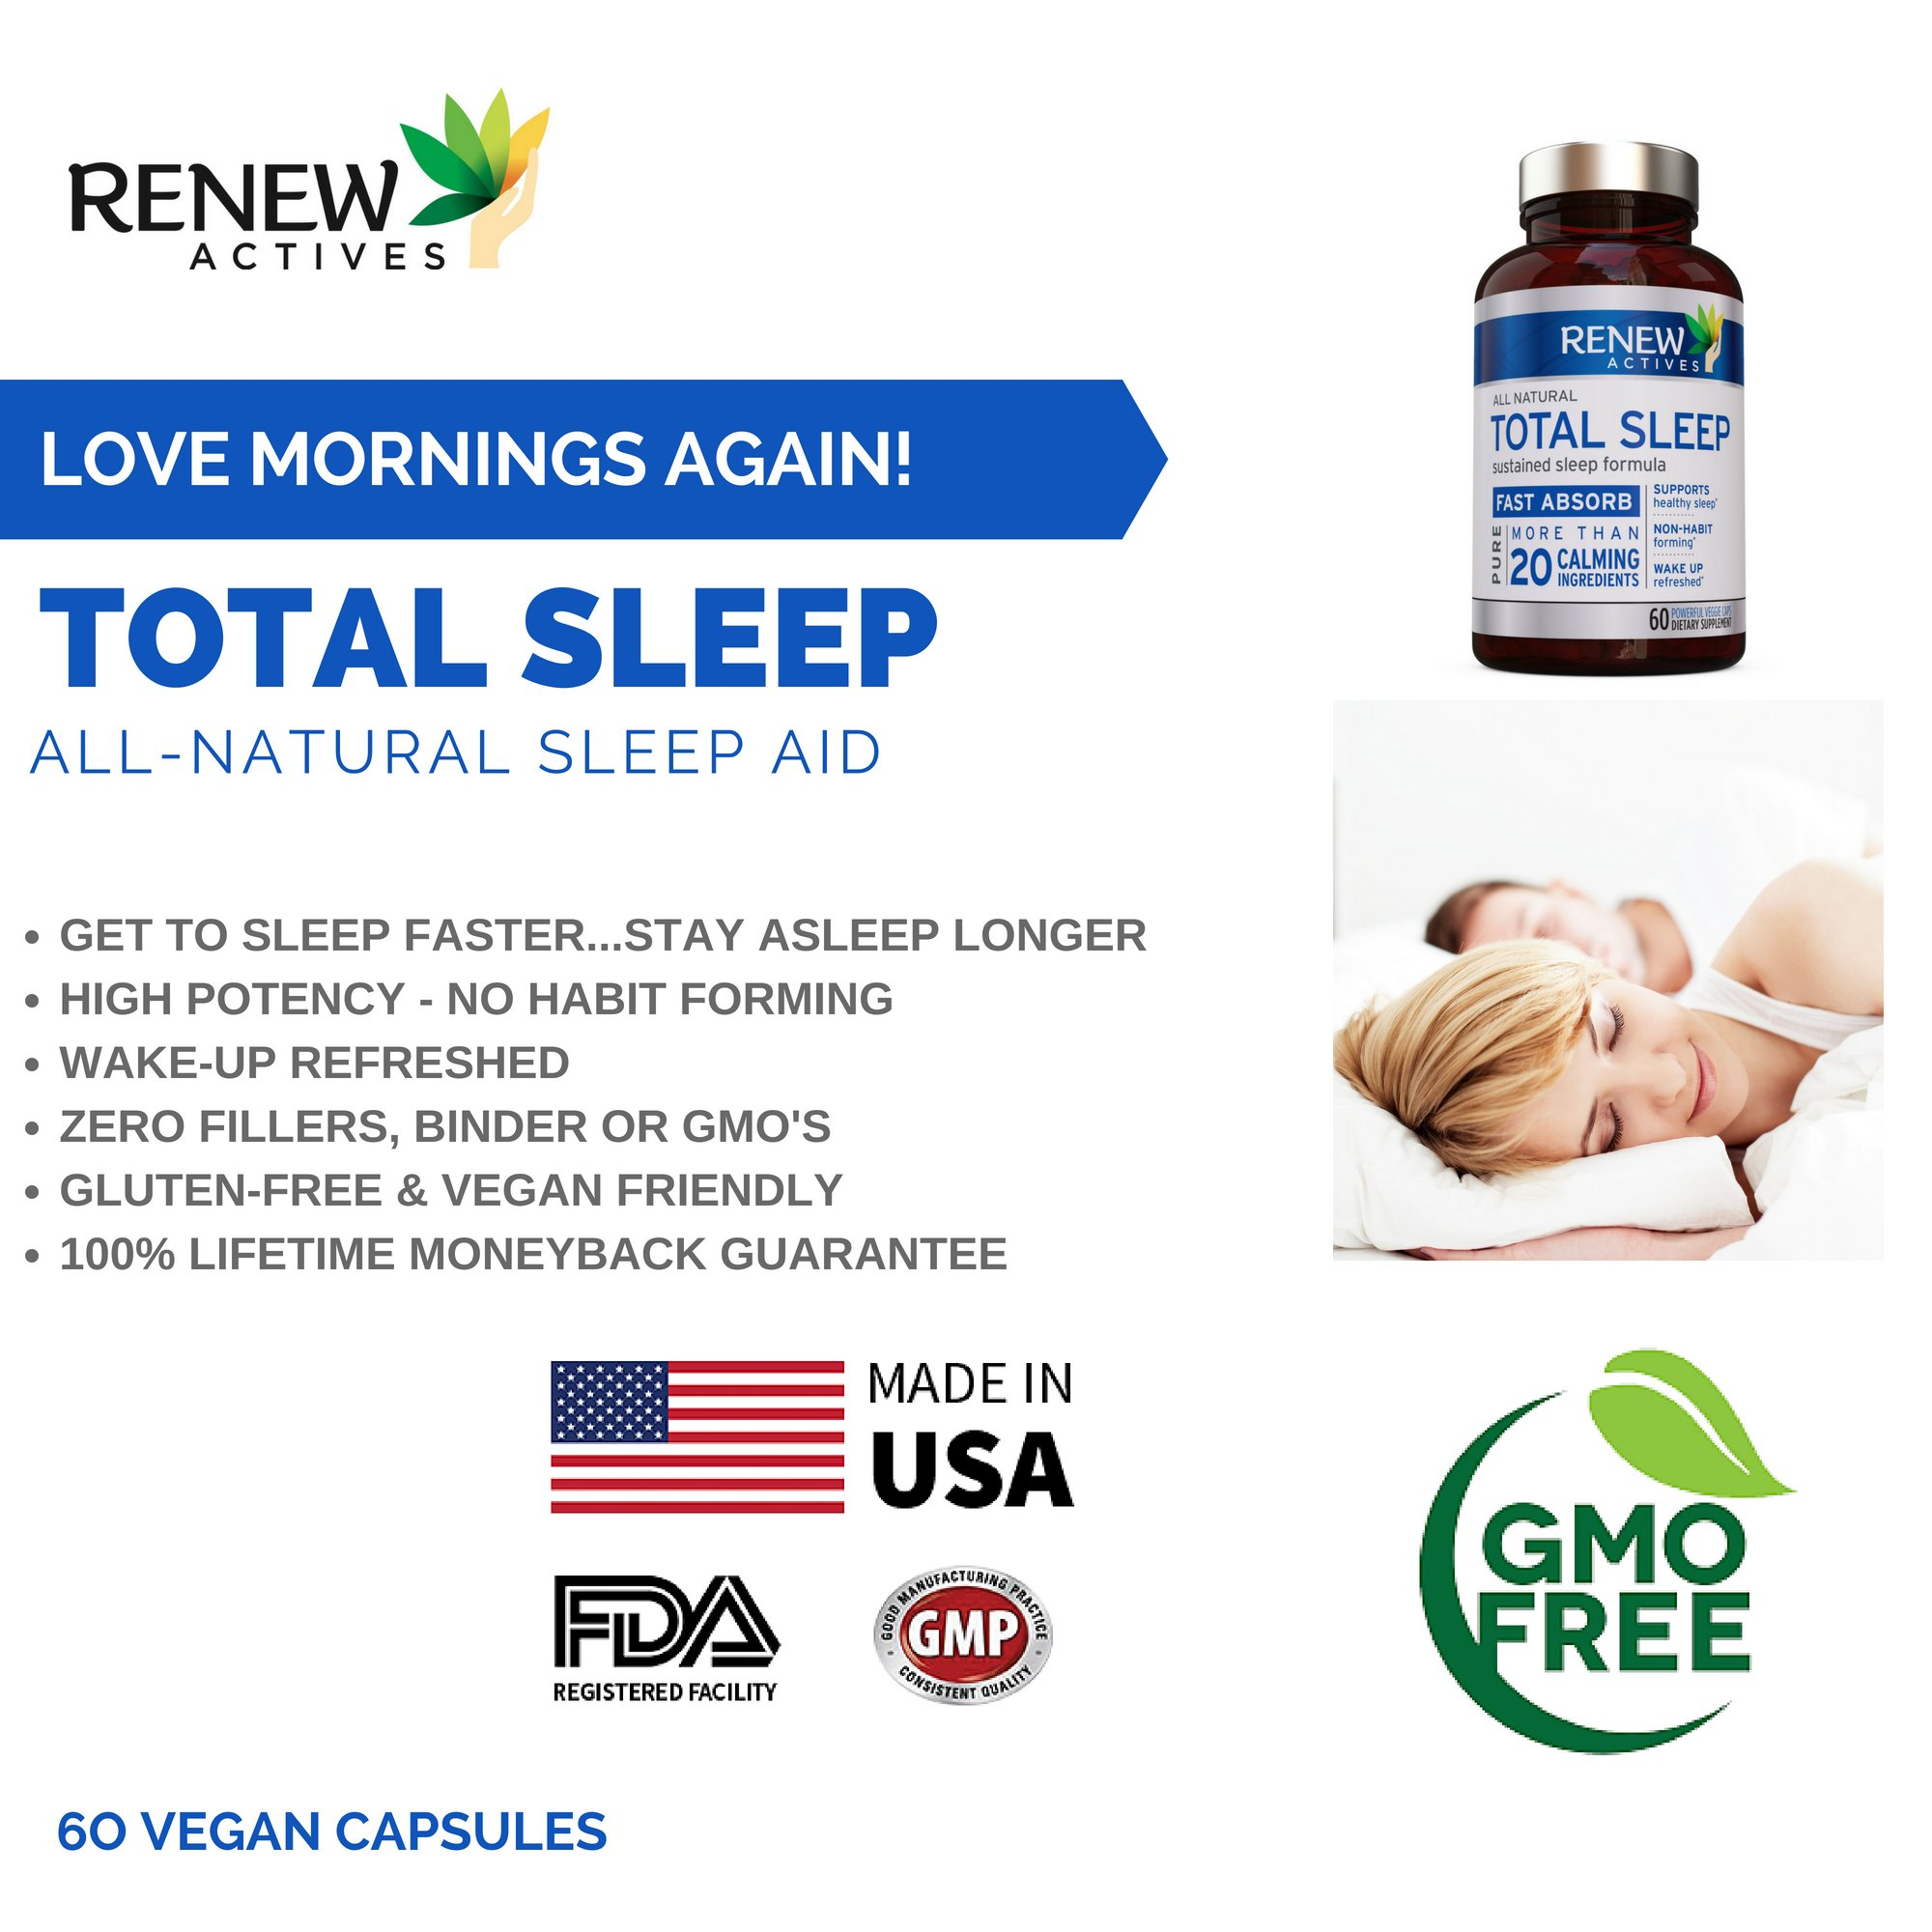 All Natural Sleep Aid Supplement. Non-Habit Forming Sleeping Pill. Our Guarantee is A Deeper, Longer & Restful Sleep! Starting Tonight Get the Peaceful & Natural Sleep You Deserve! by Renew Actives (Image #5)